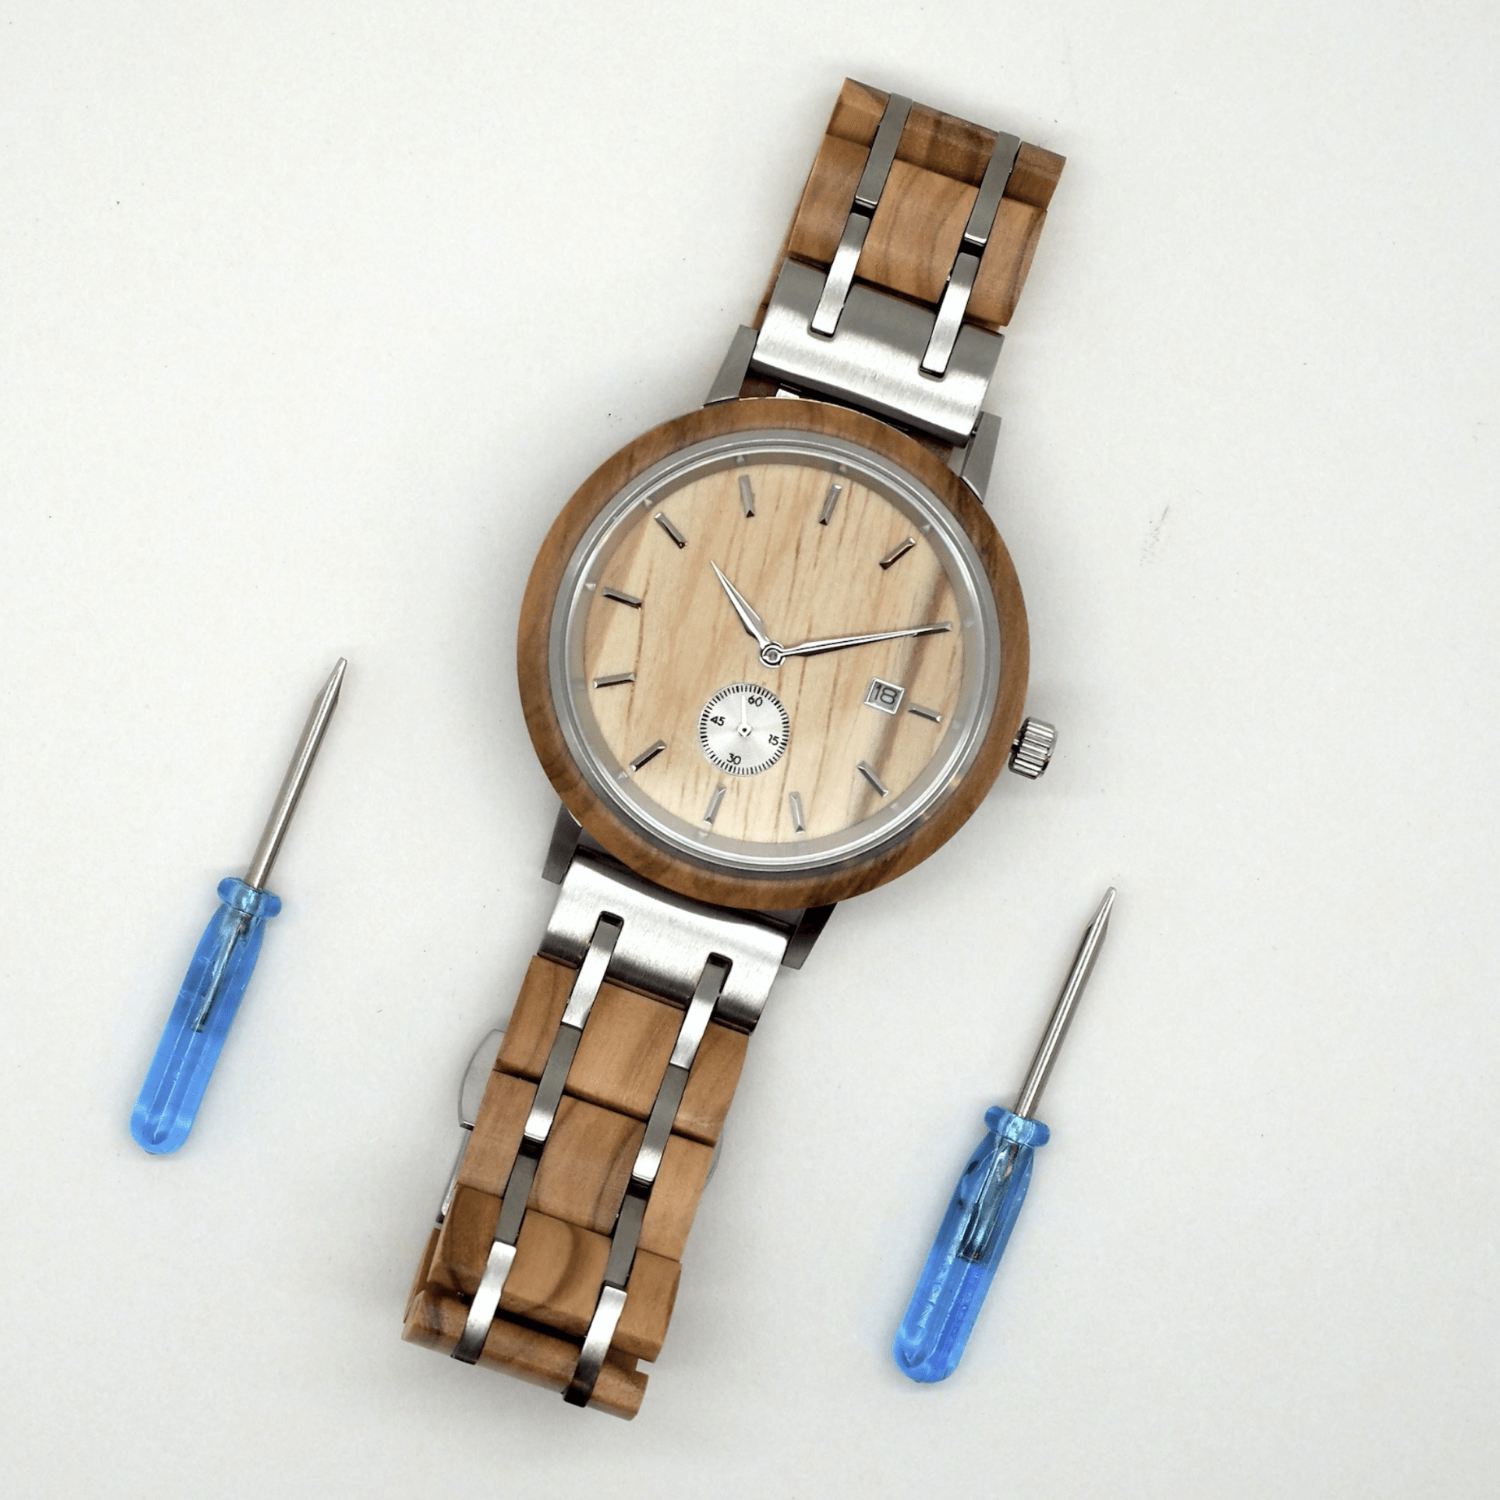 Wooden watch and two small screwdrivers